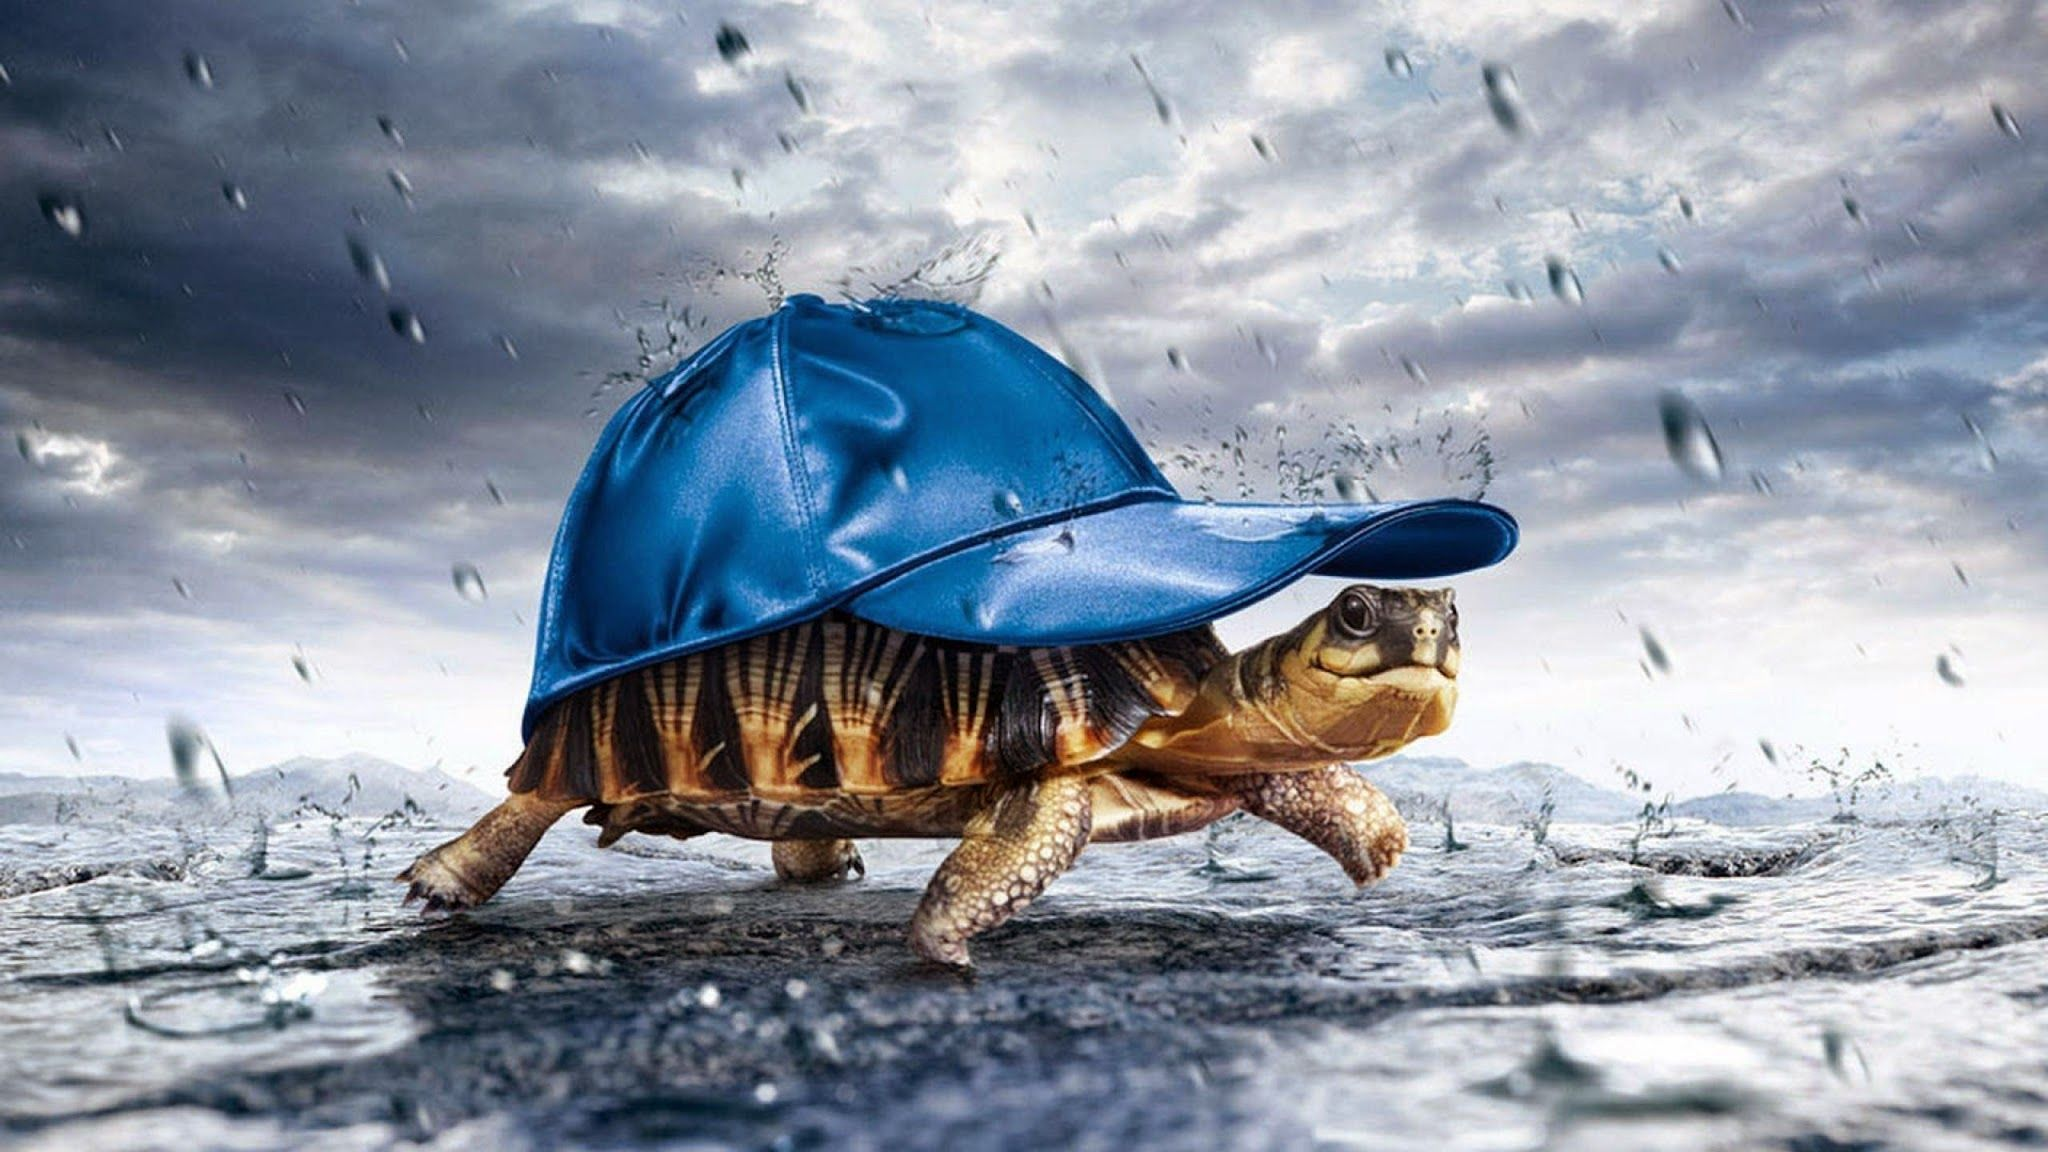 tortise photo hd free download